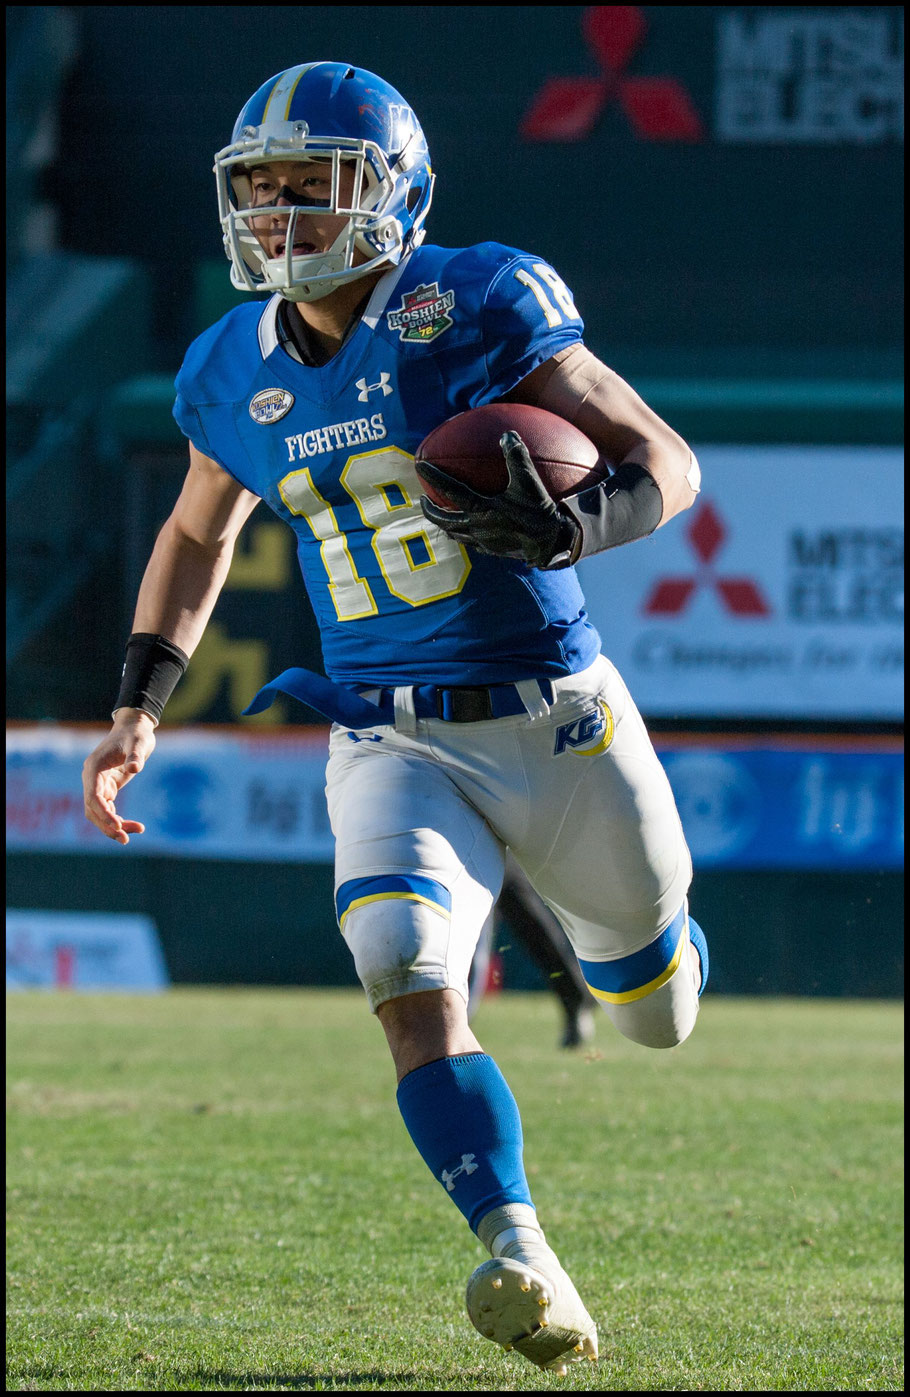 QB Koki Nishino played well but couldn't lead his team to the victory – Lionel Piguet, Inside Sport: Japan, Dec 17th, 2017